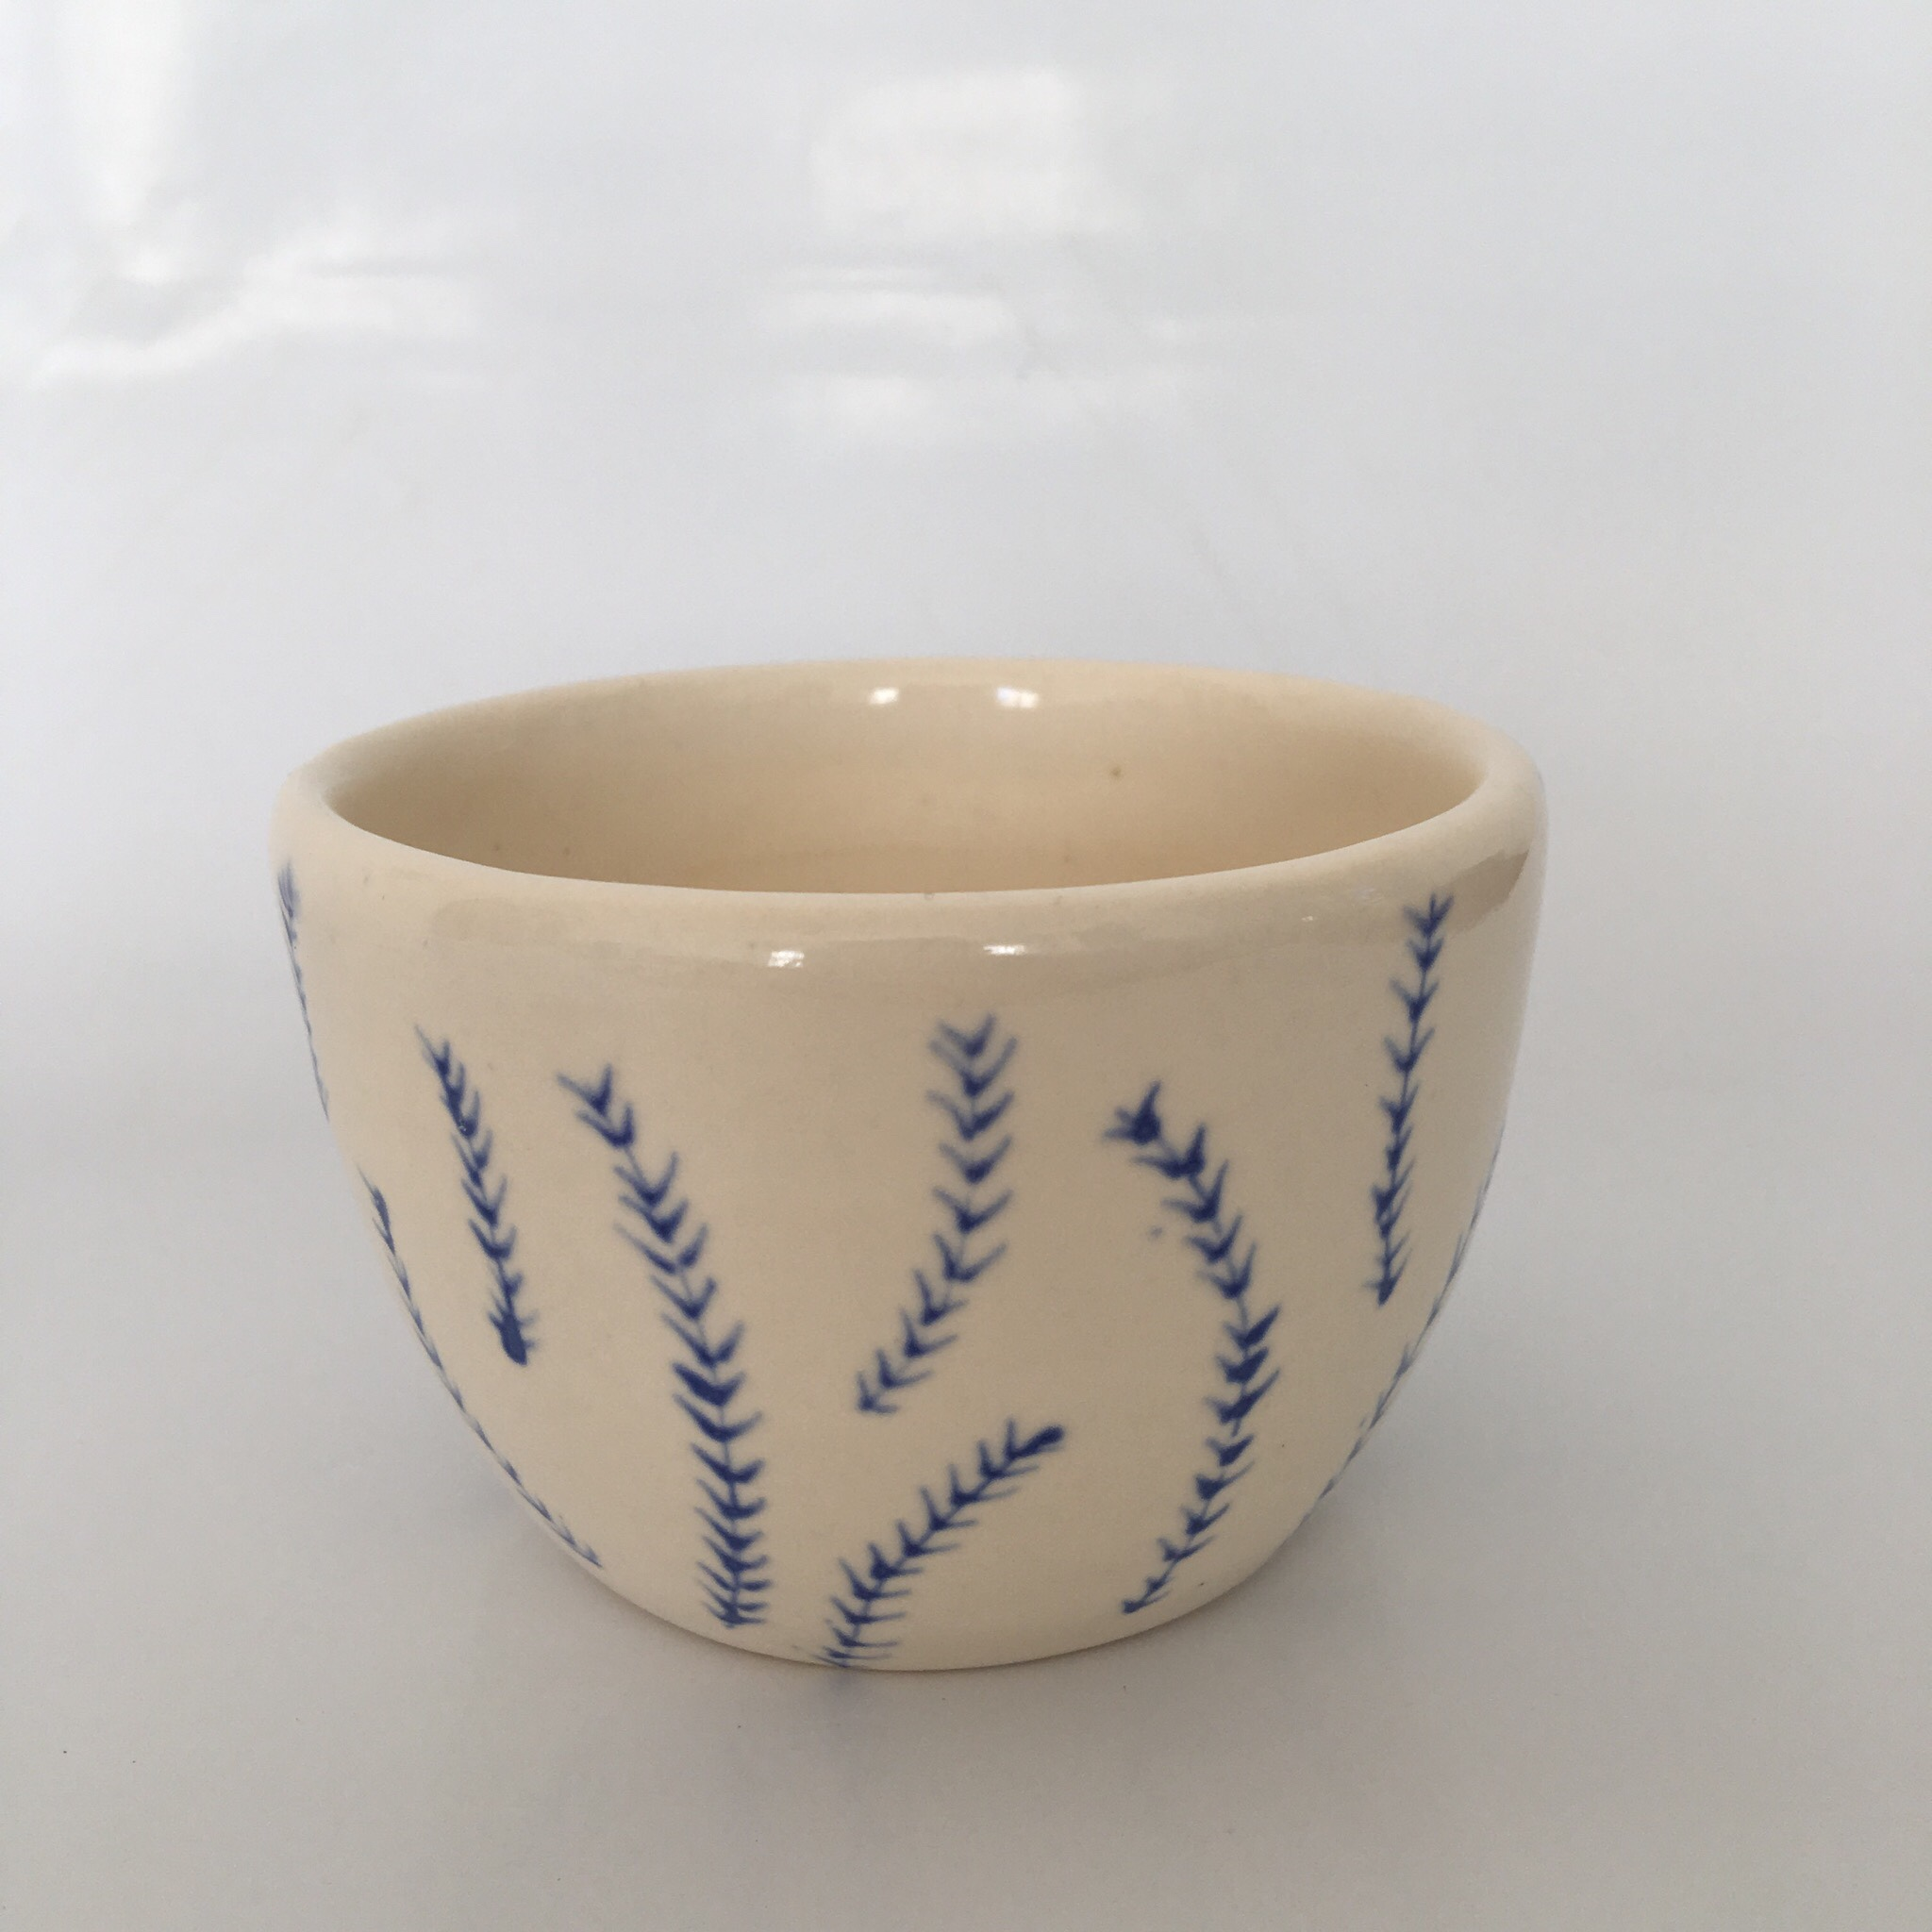 simple white floral bowl 🕯made with a porcelain clay - Depop